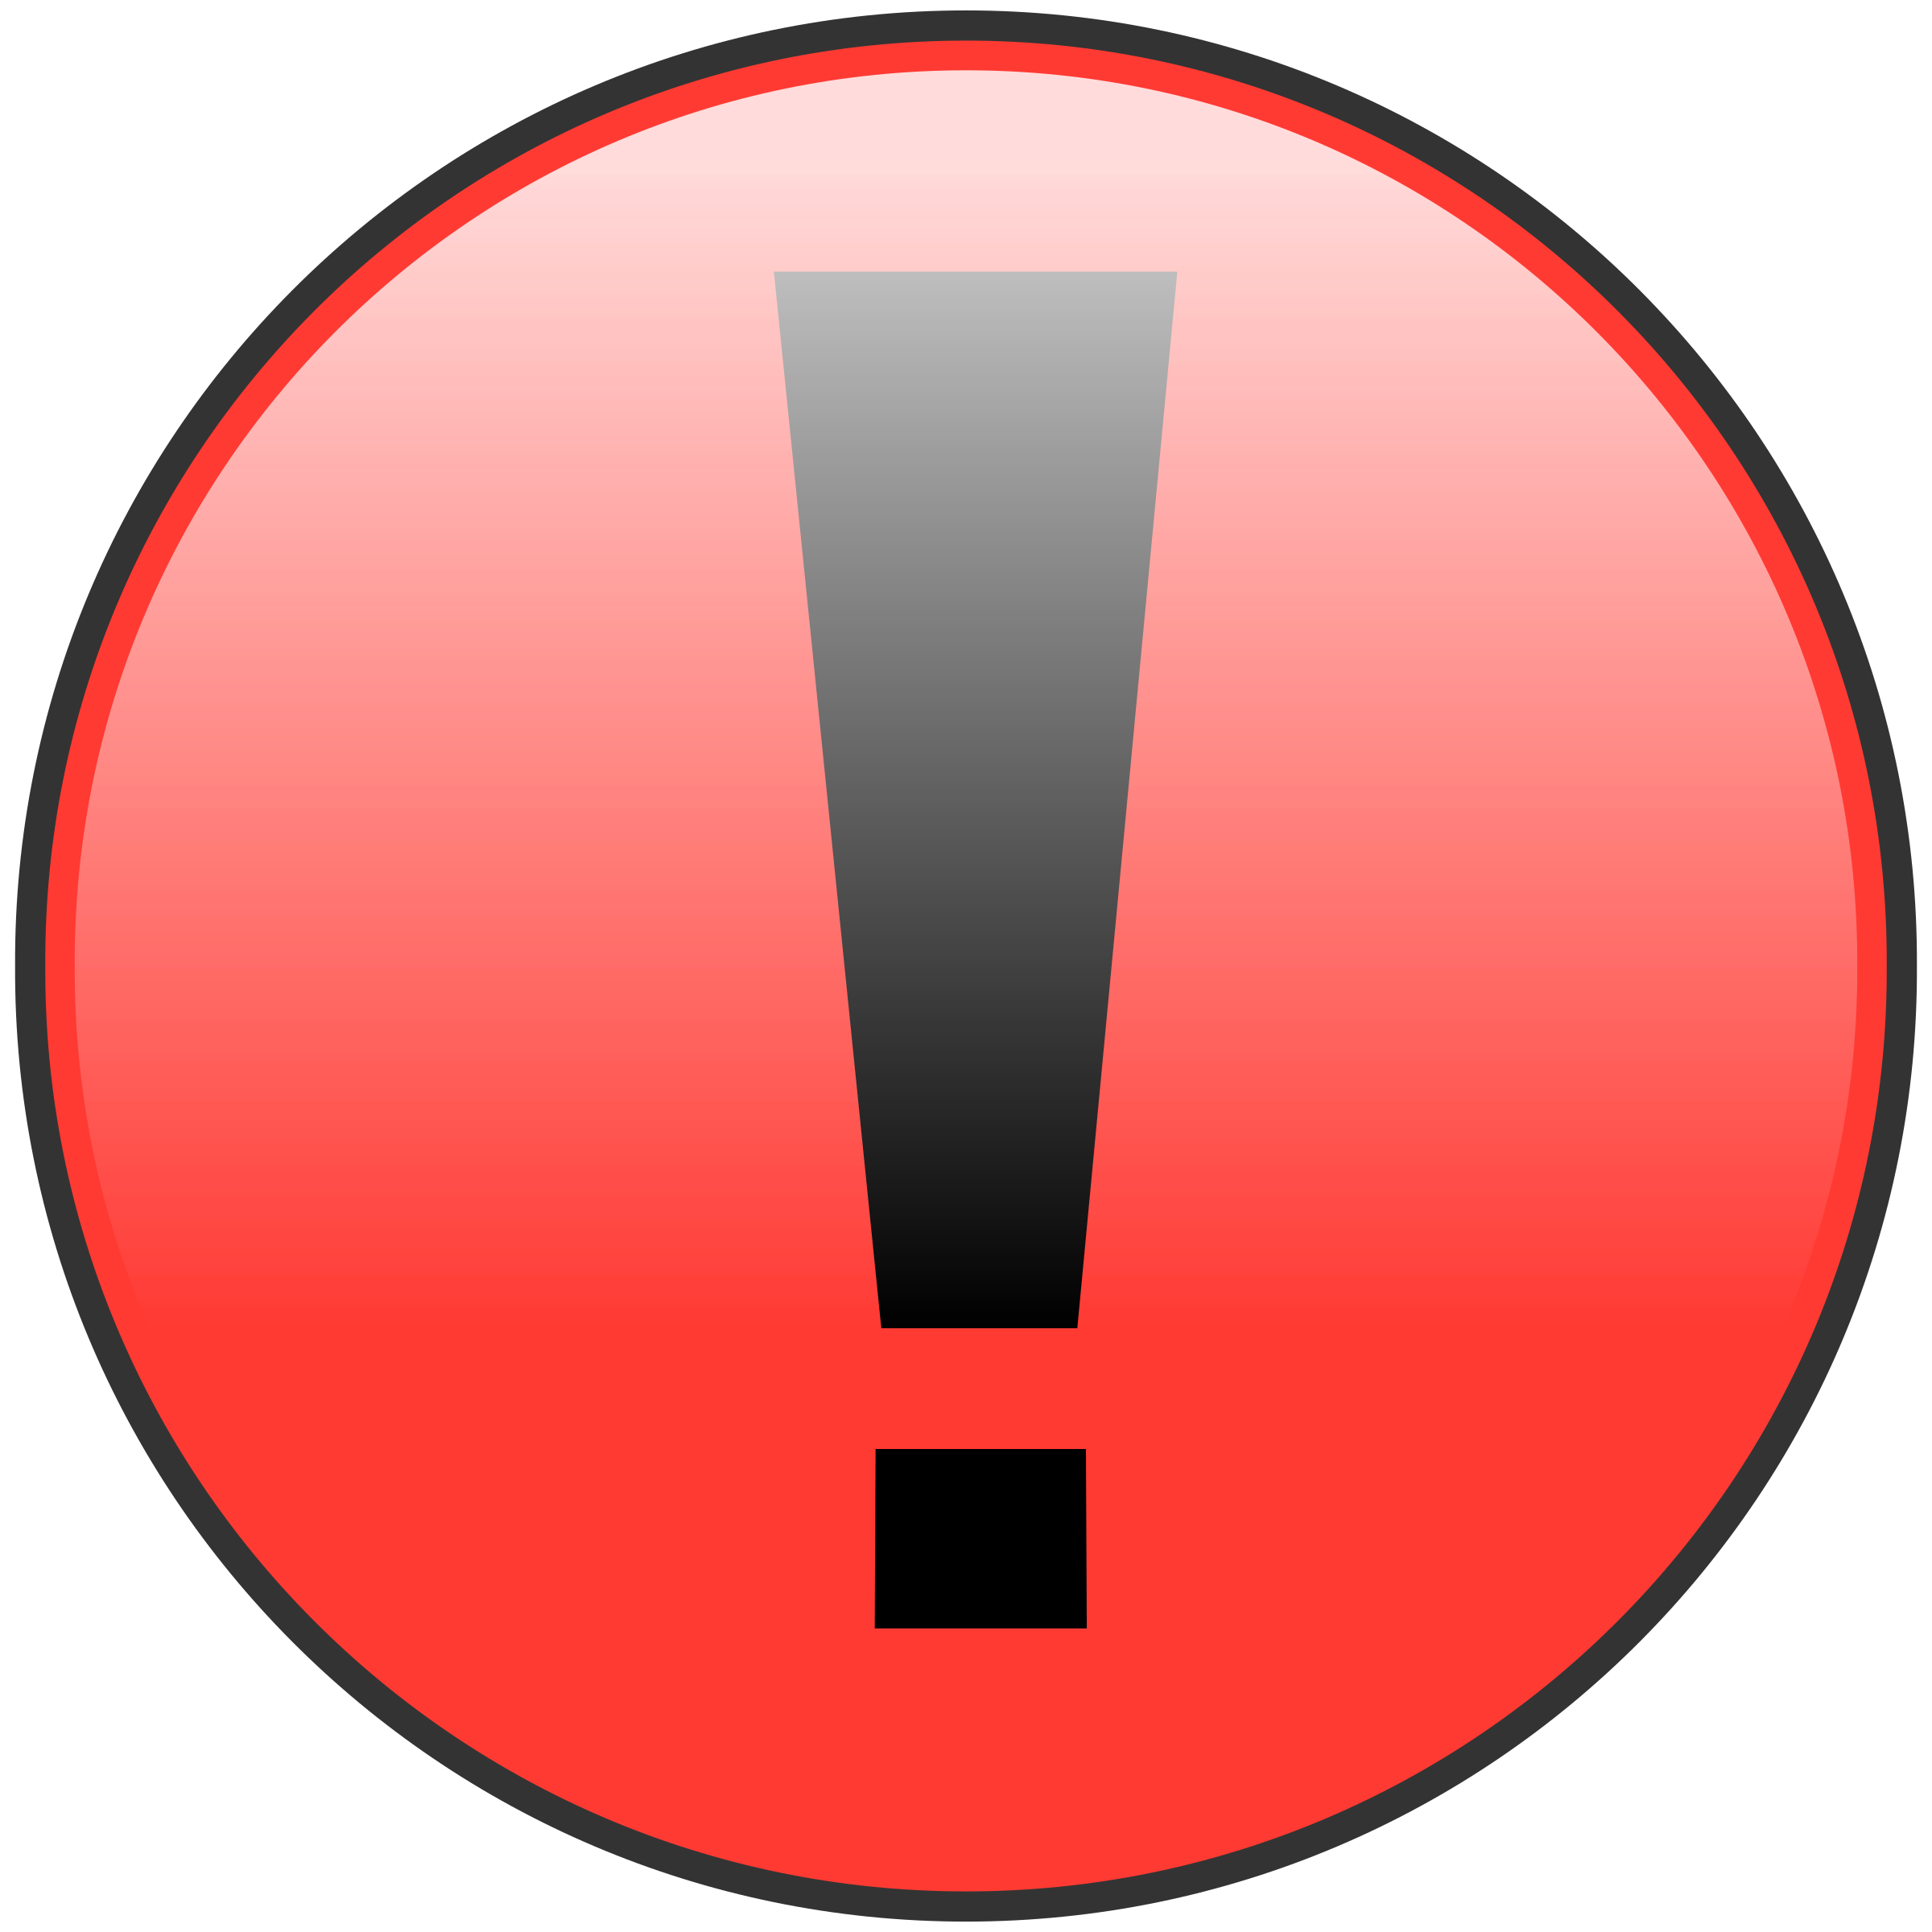 jpg free library Attention clipart red. Big image png.